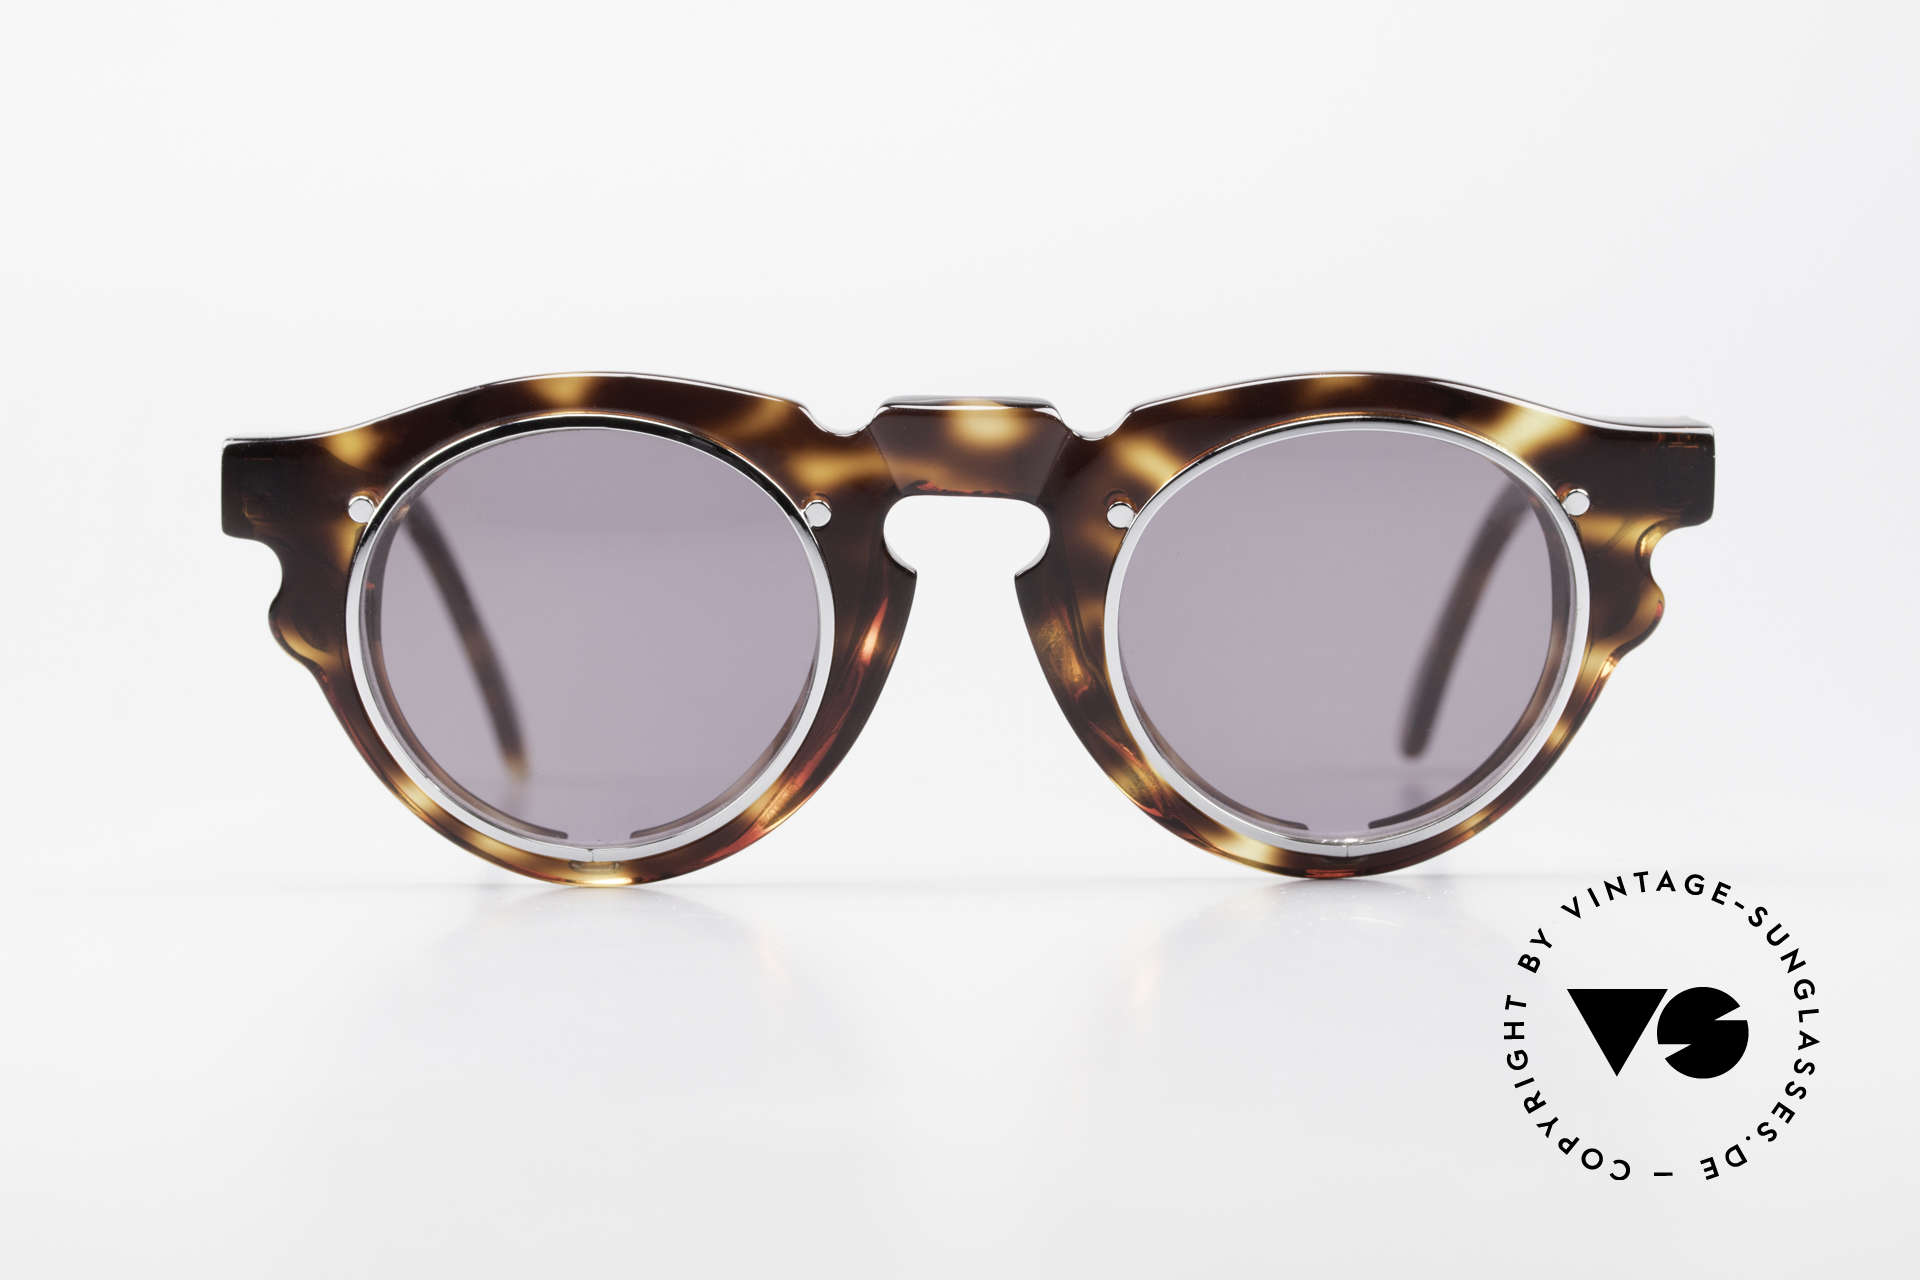 IDC 768 True Vintage Panto Sunglasses, high-end quality shades and very pleasant to wear, Made for Men and Women